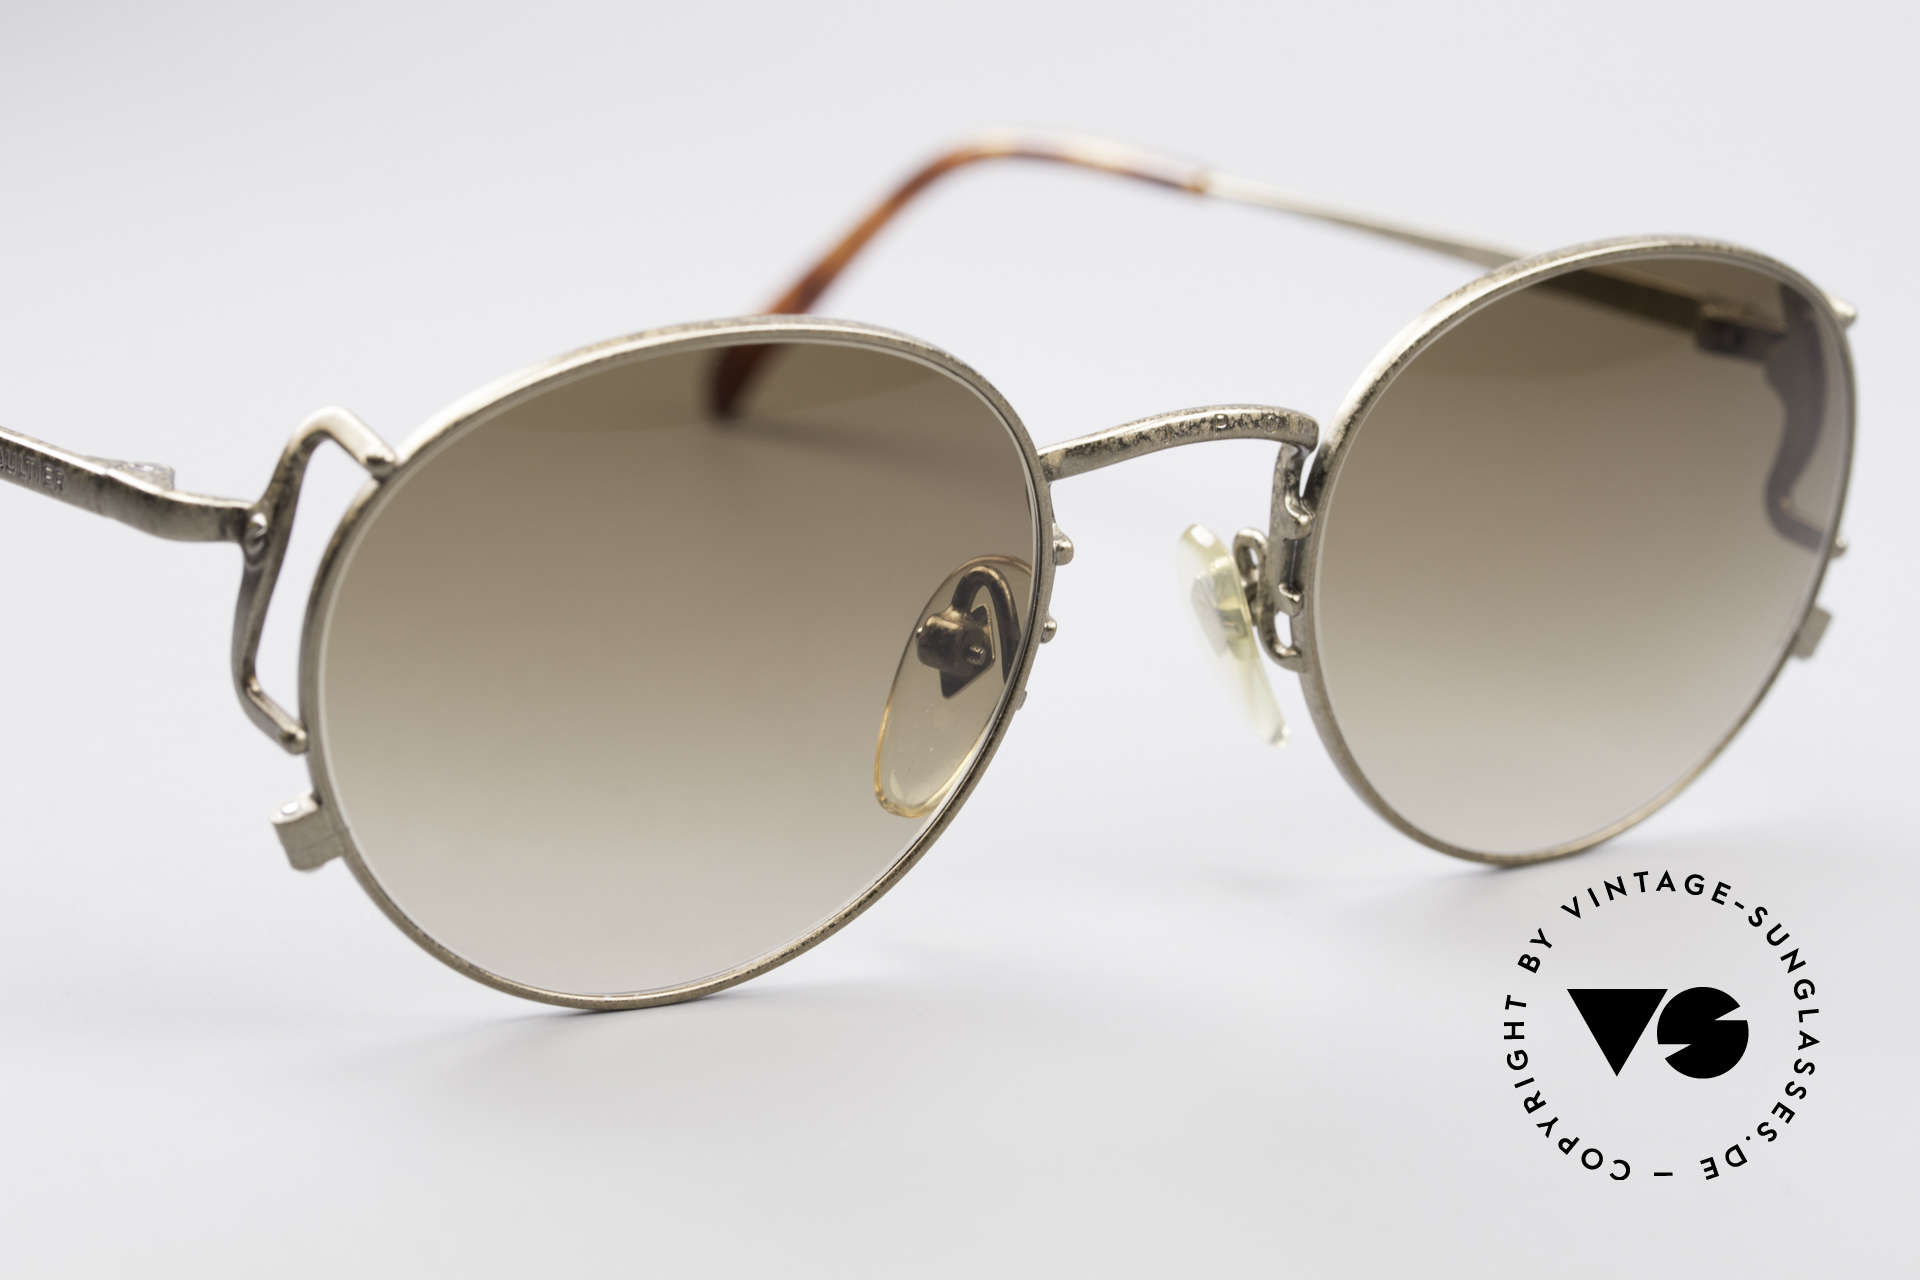 Jean Paul Gaultier 55-3178 90's Vintage No Retro Specs, NO retro sunglasses, but a 25 years old original, Made for Men and Women